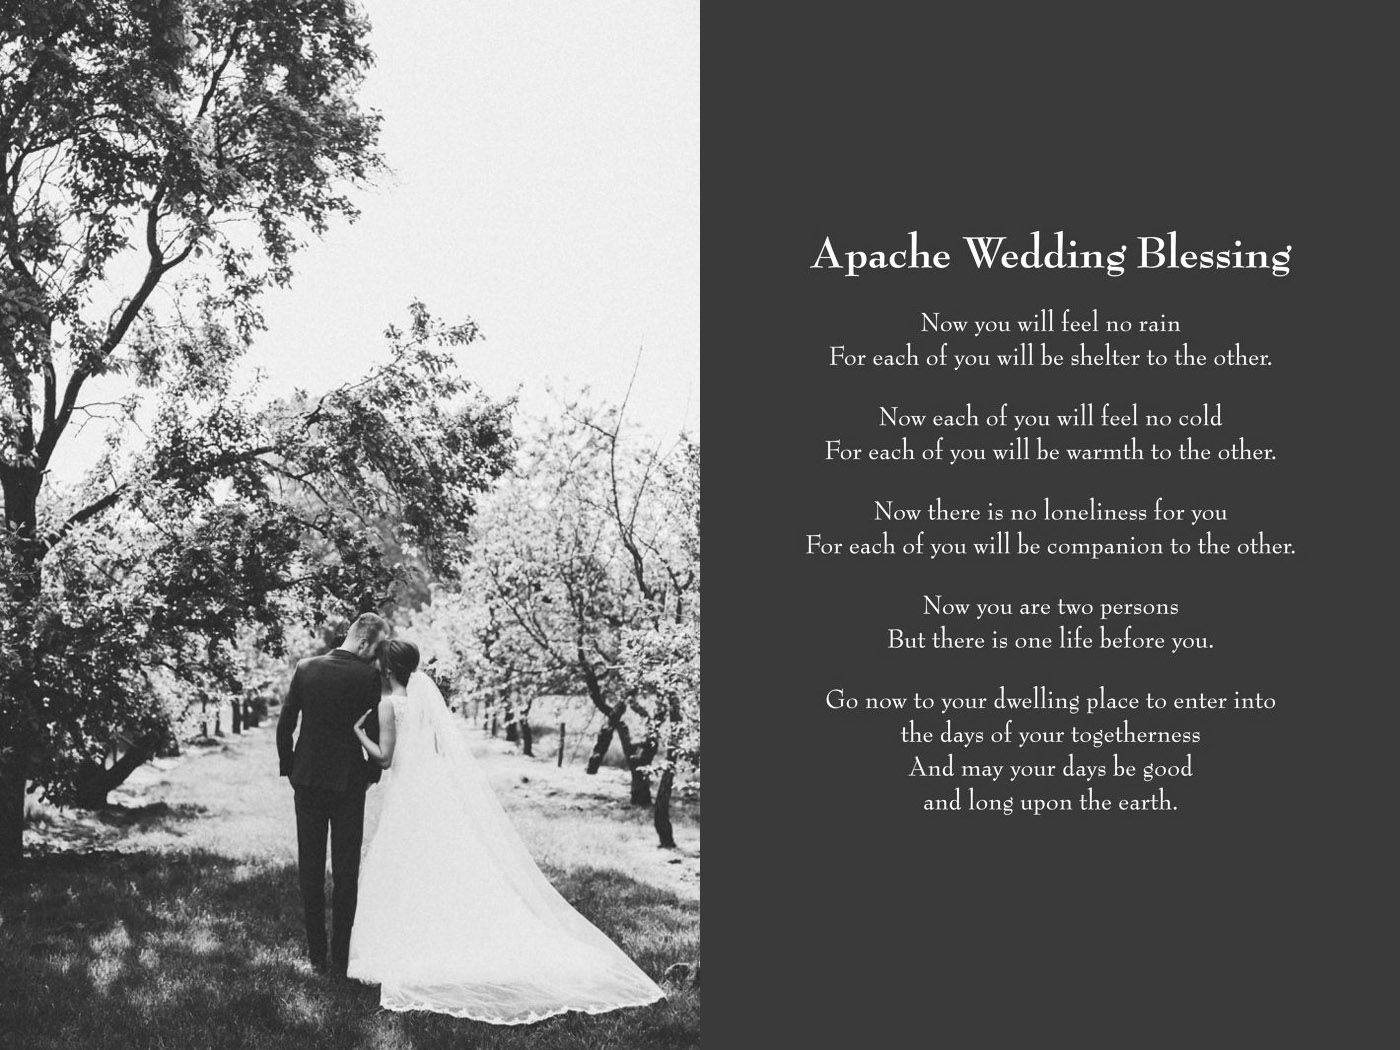 Apache Wedding Blessing Gracetheday